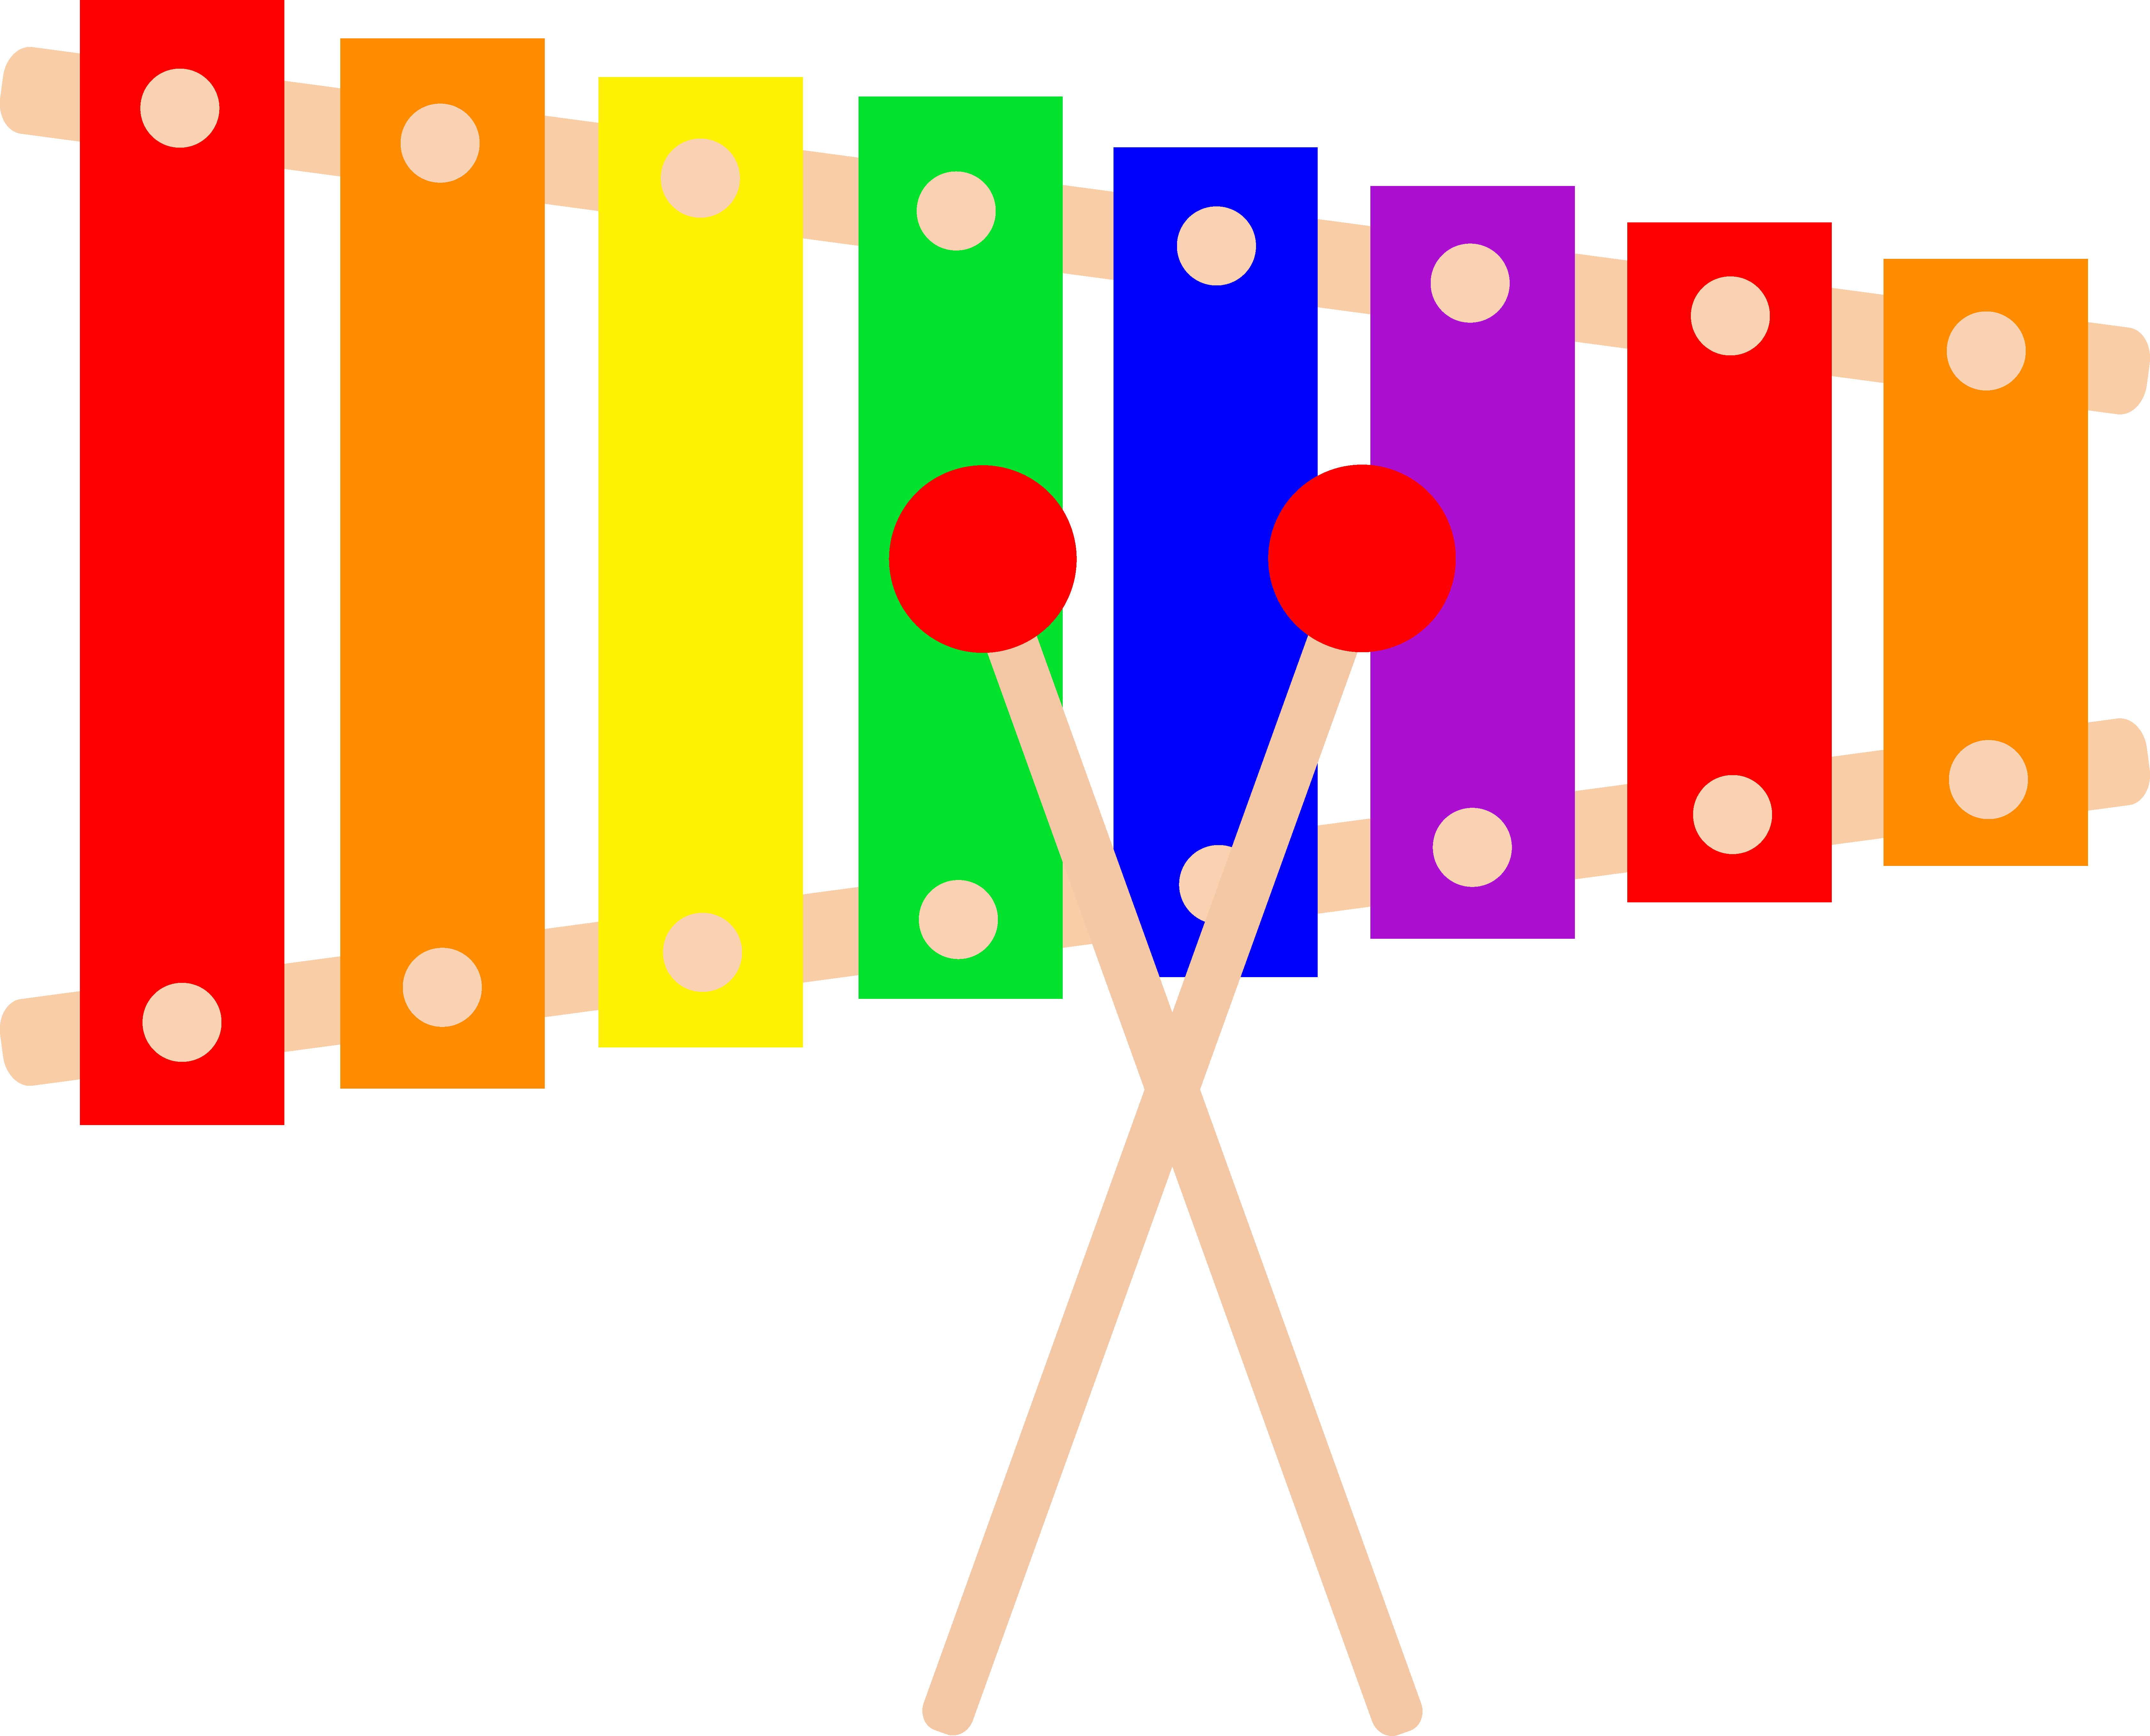 Clipart xylophone clip library download Colorful Xylophone Design - Free Clip Art clip library download